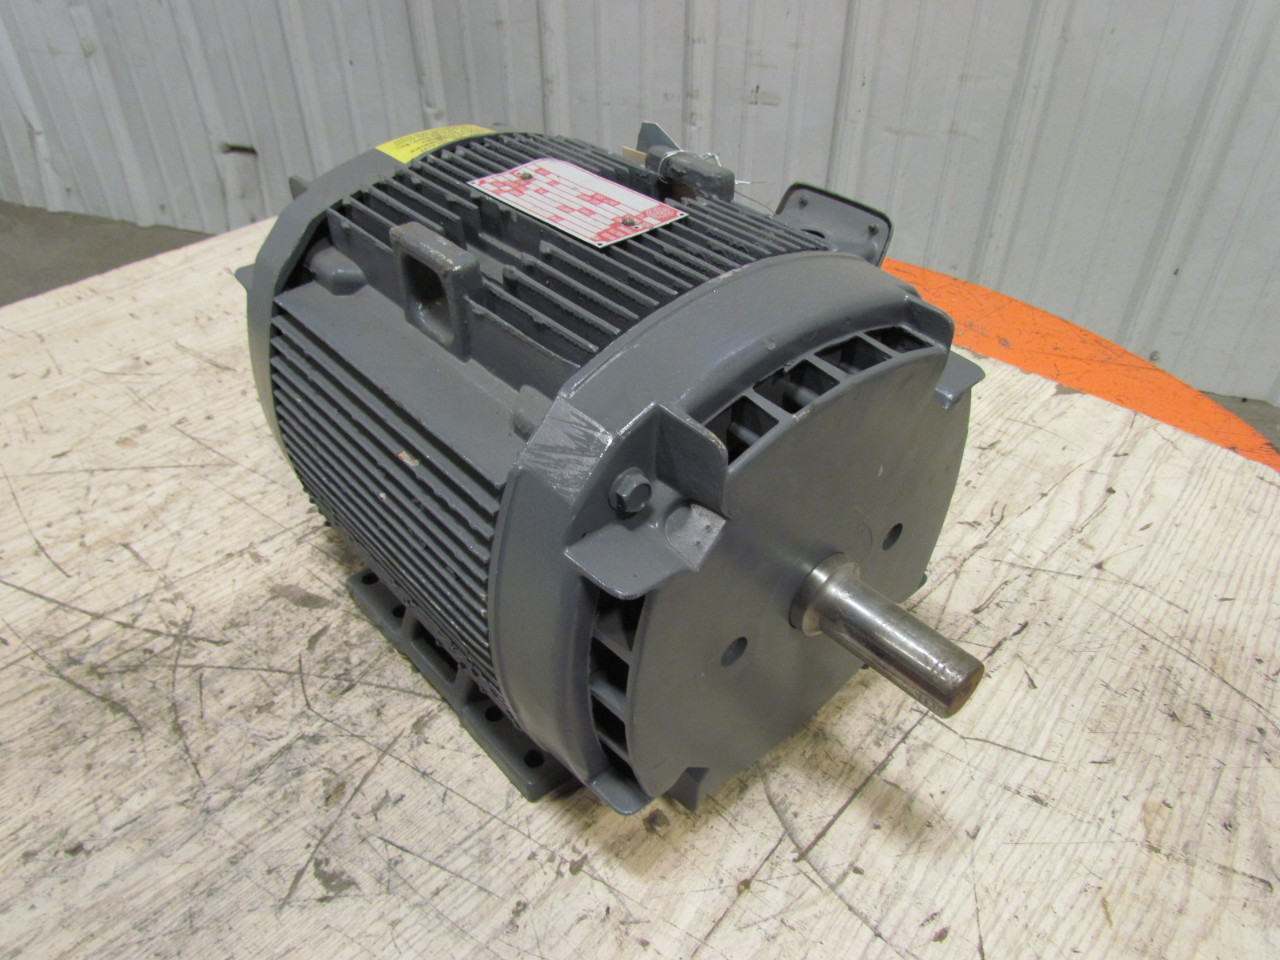 Ge general electric 3ph ac motor 5hp 1750 rpm 230 460v 1 1 for General electric ac motor thermally protected